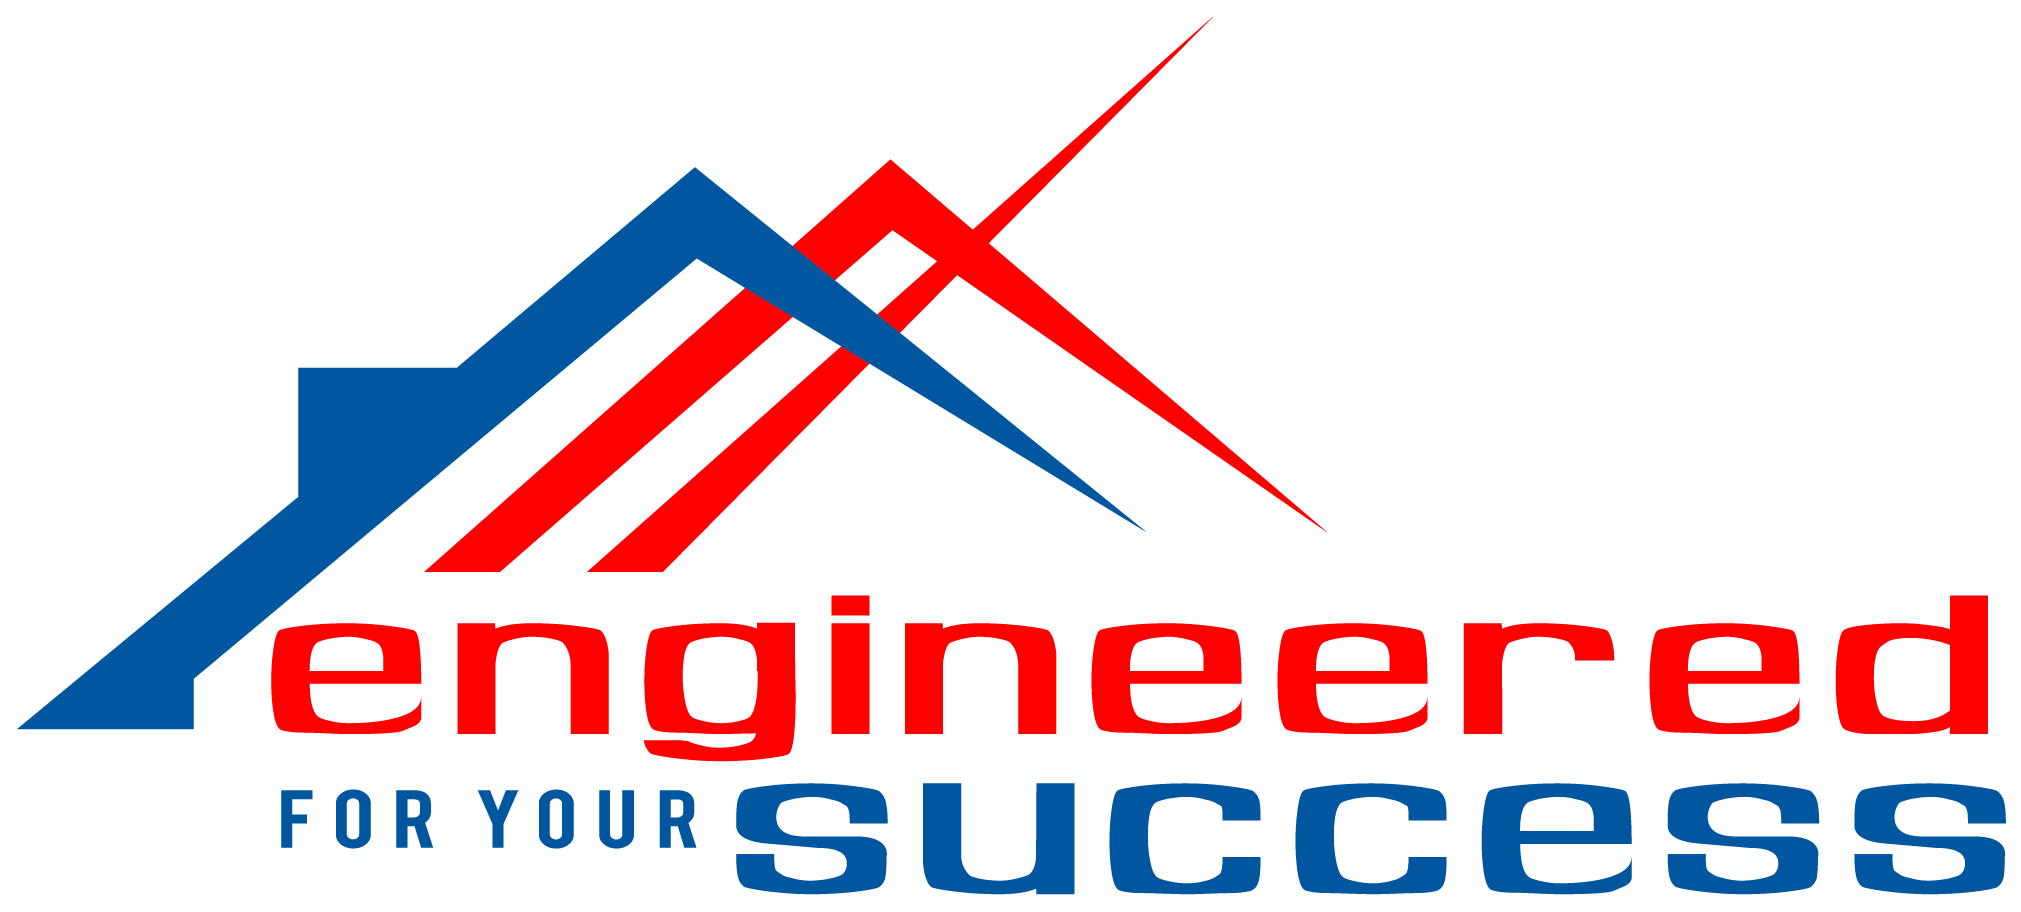 Engineered for Your Success